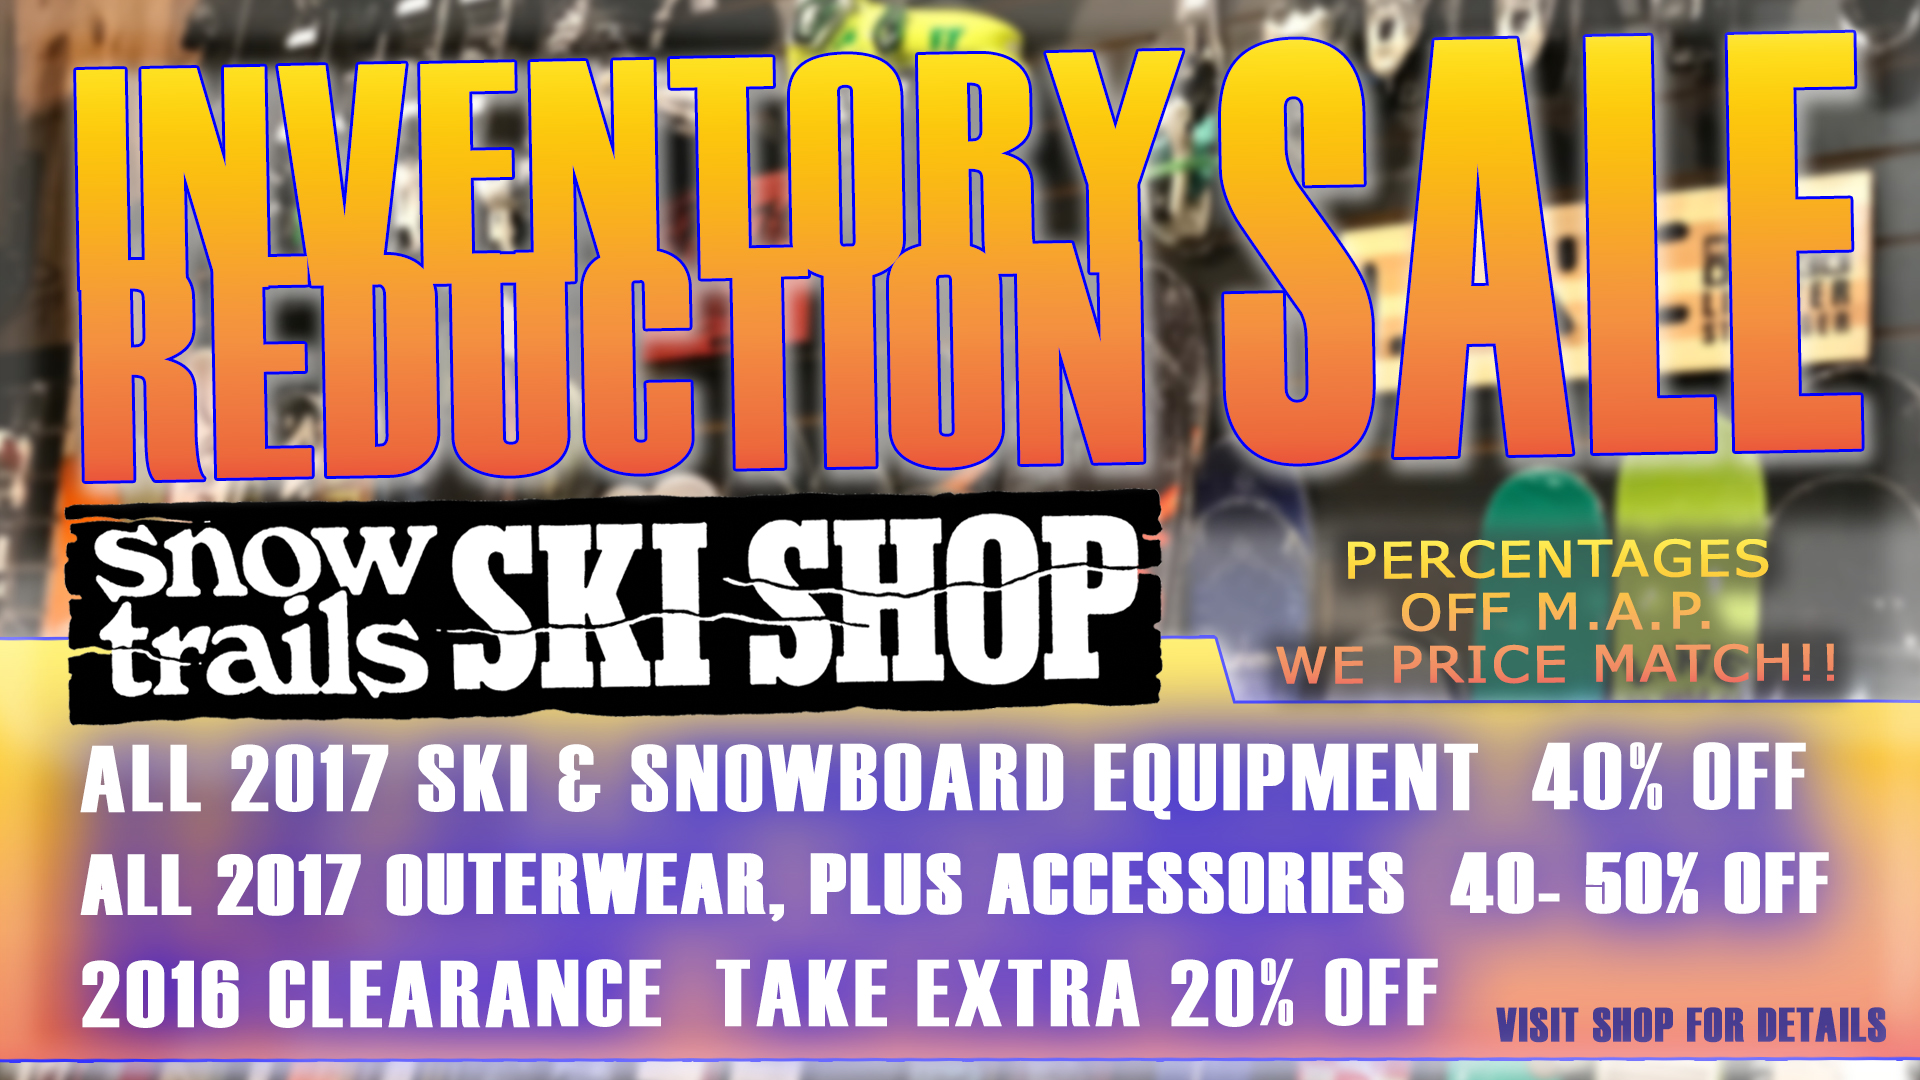 Inventory Reduction Sale Snow Trails Ski Shop